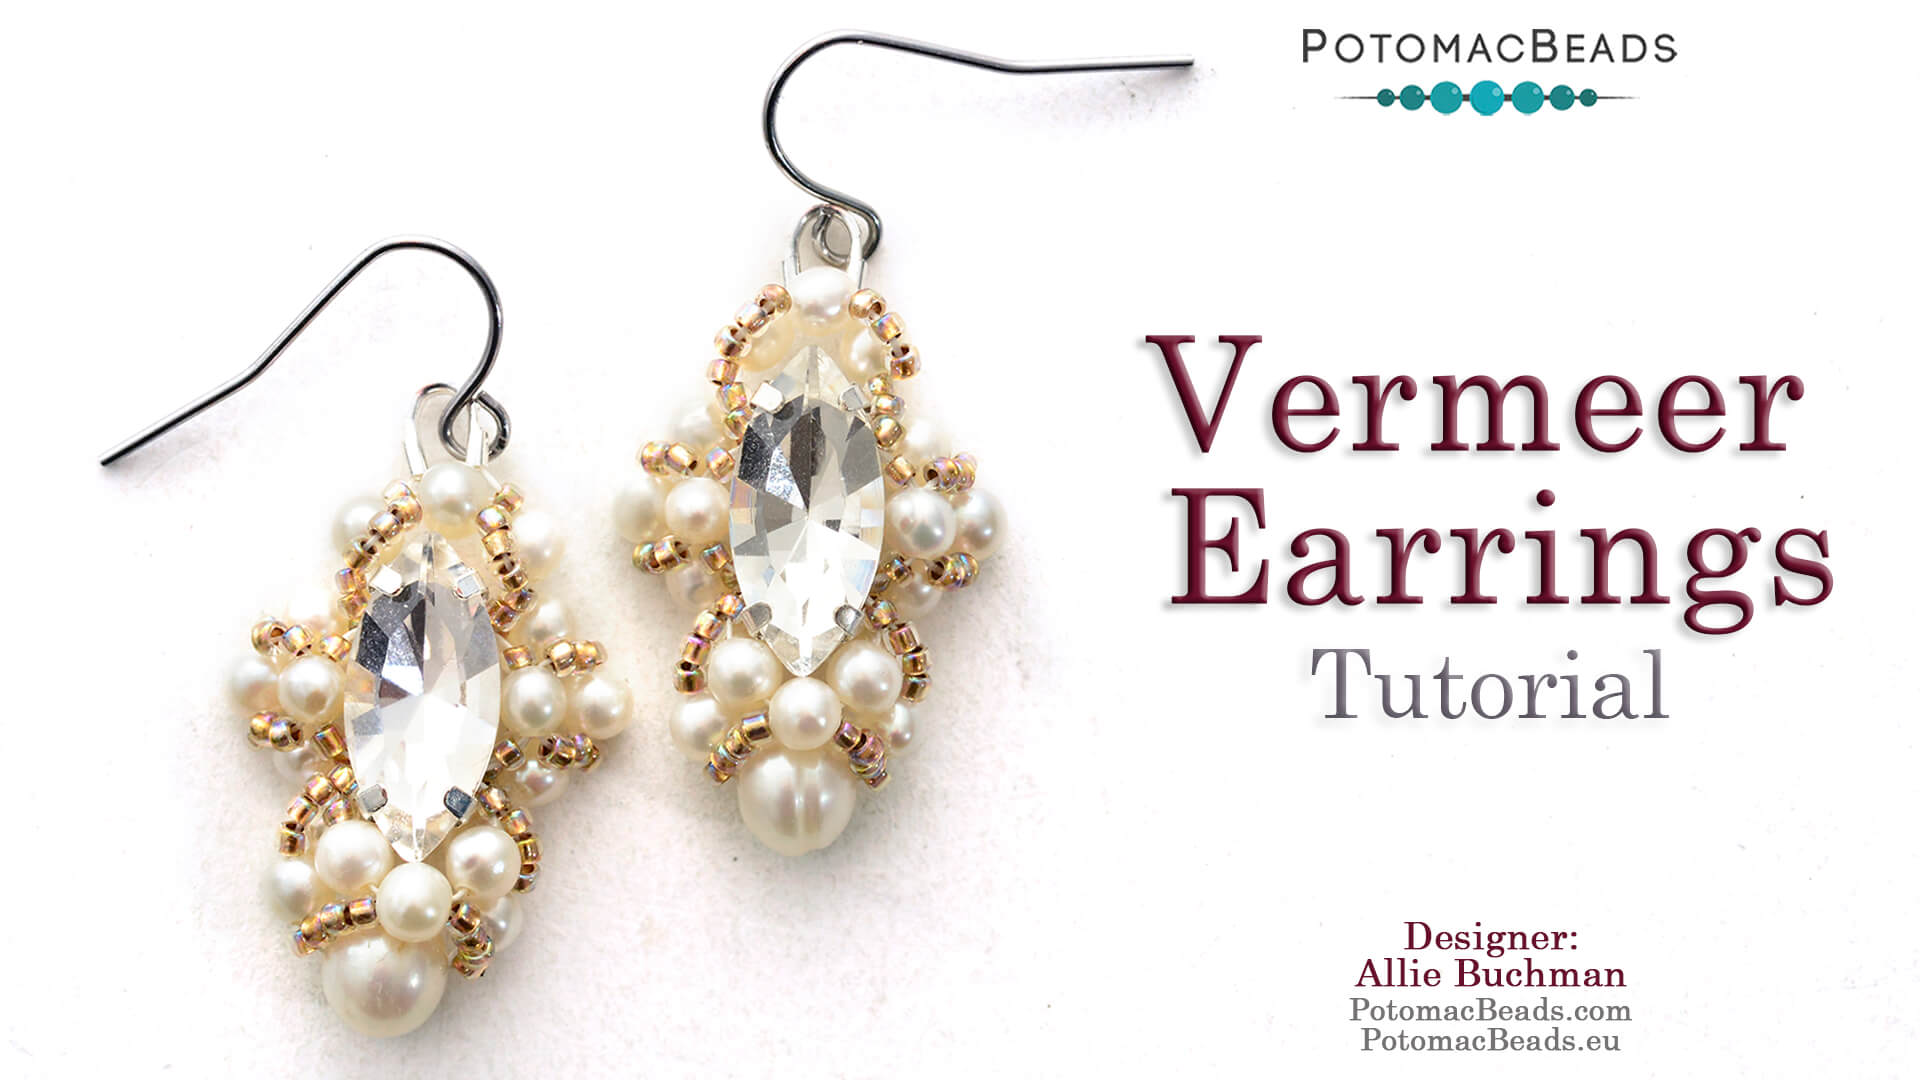 How to Bead Jewelry / Videos Sorted by Beads / Pearl Videos (Czech, Freshwater, Potomac Pearls) / Vermeer Earrings Tutorial